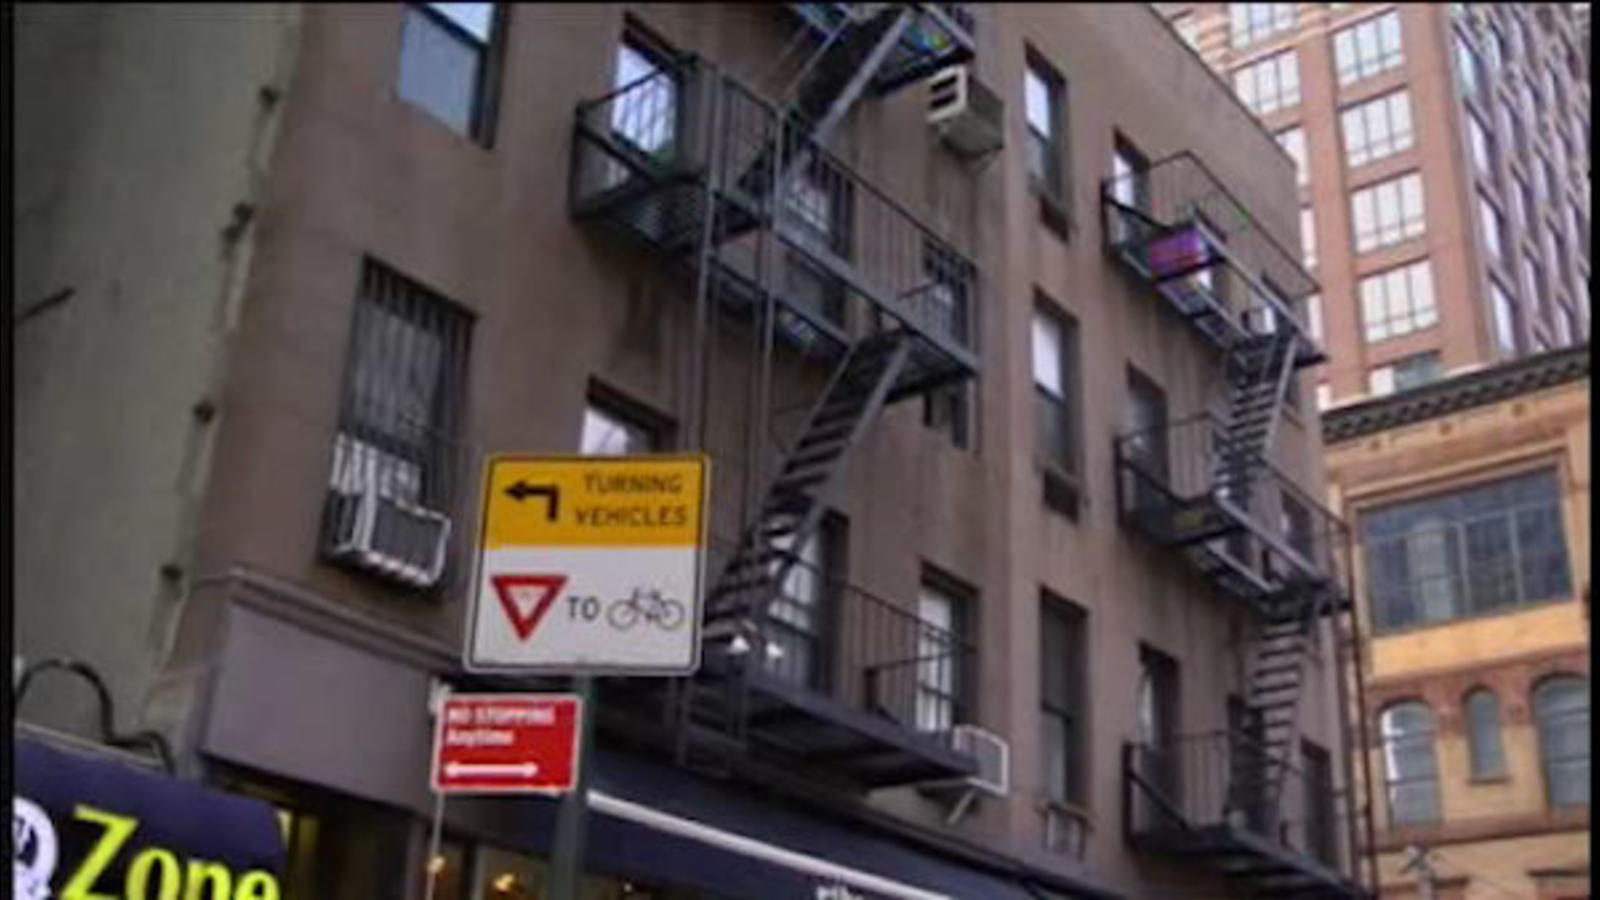 71 Year Old Woman Hurt When Jumper Lands On Her Outside East Side Building Abc7ny